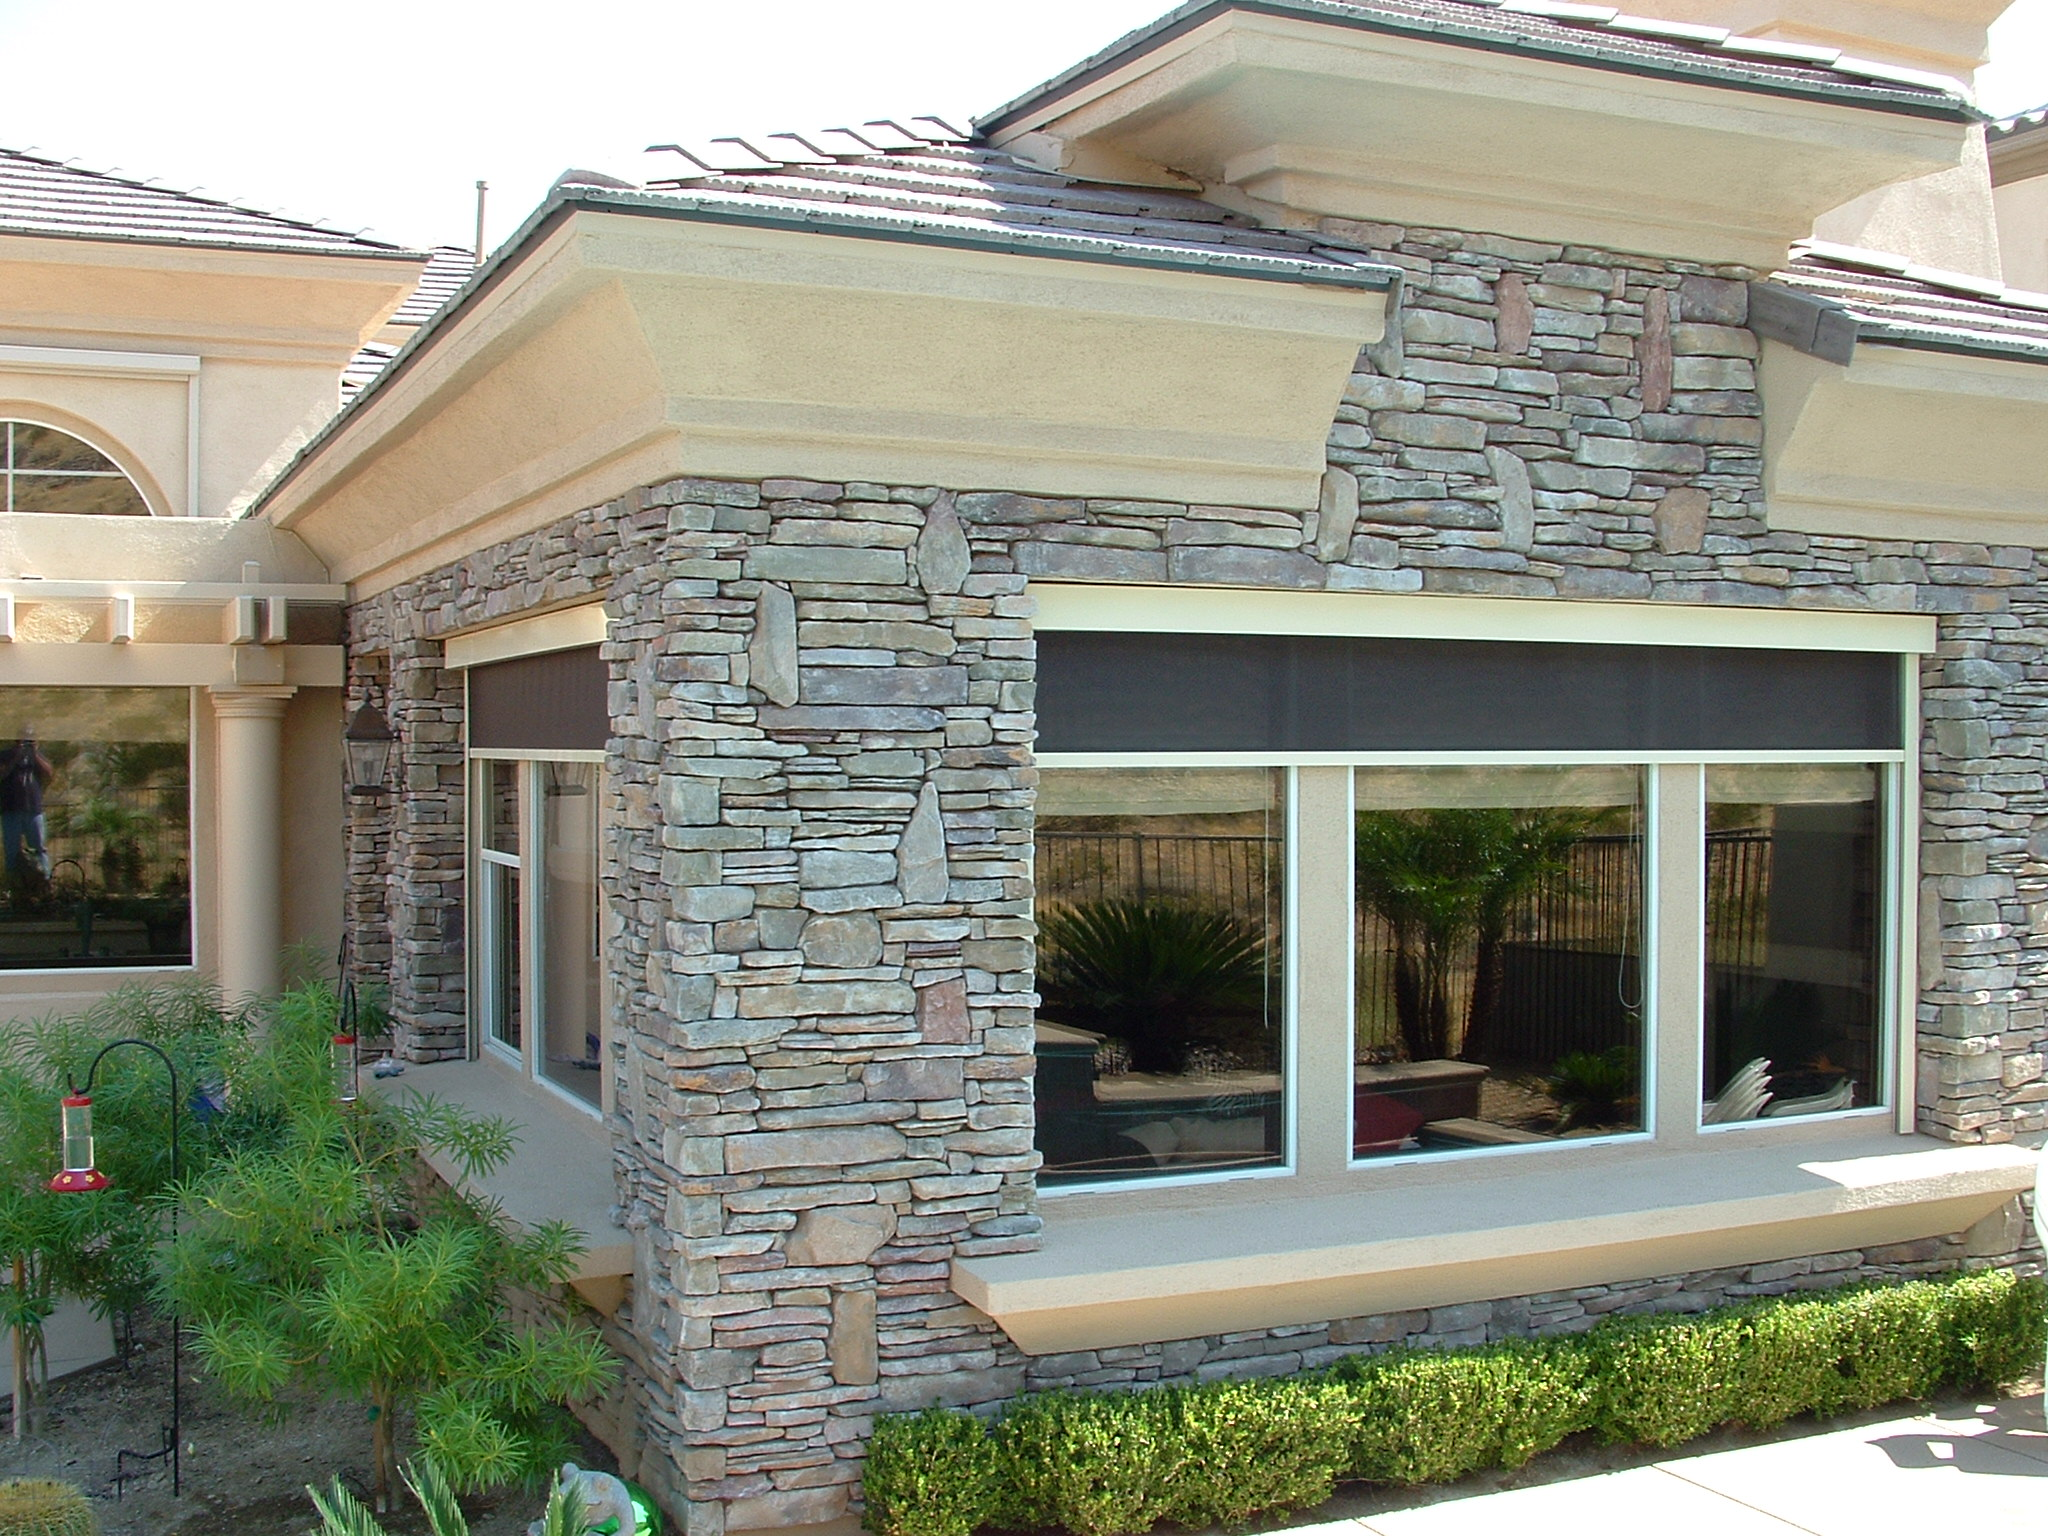 Using the finest materials available, exterior shade units are custom built to your measurements.